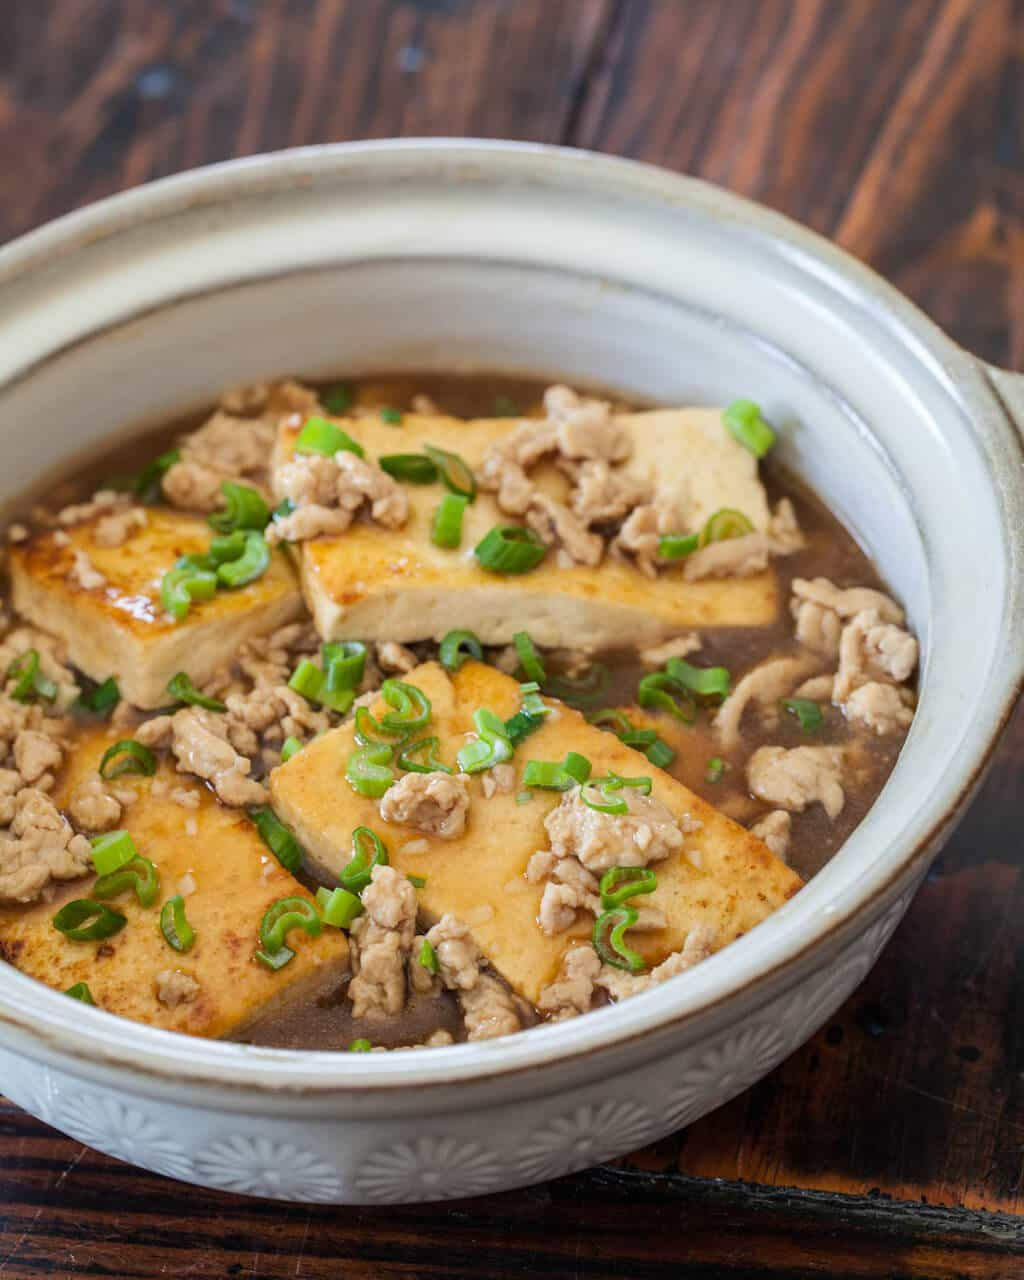 Chinese Tofu Recipes  Braised Tofu with Ground Pork Steamy Kitchen Recipes